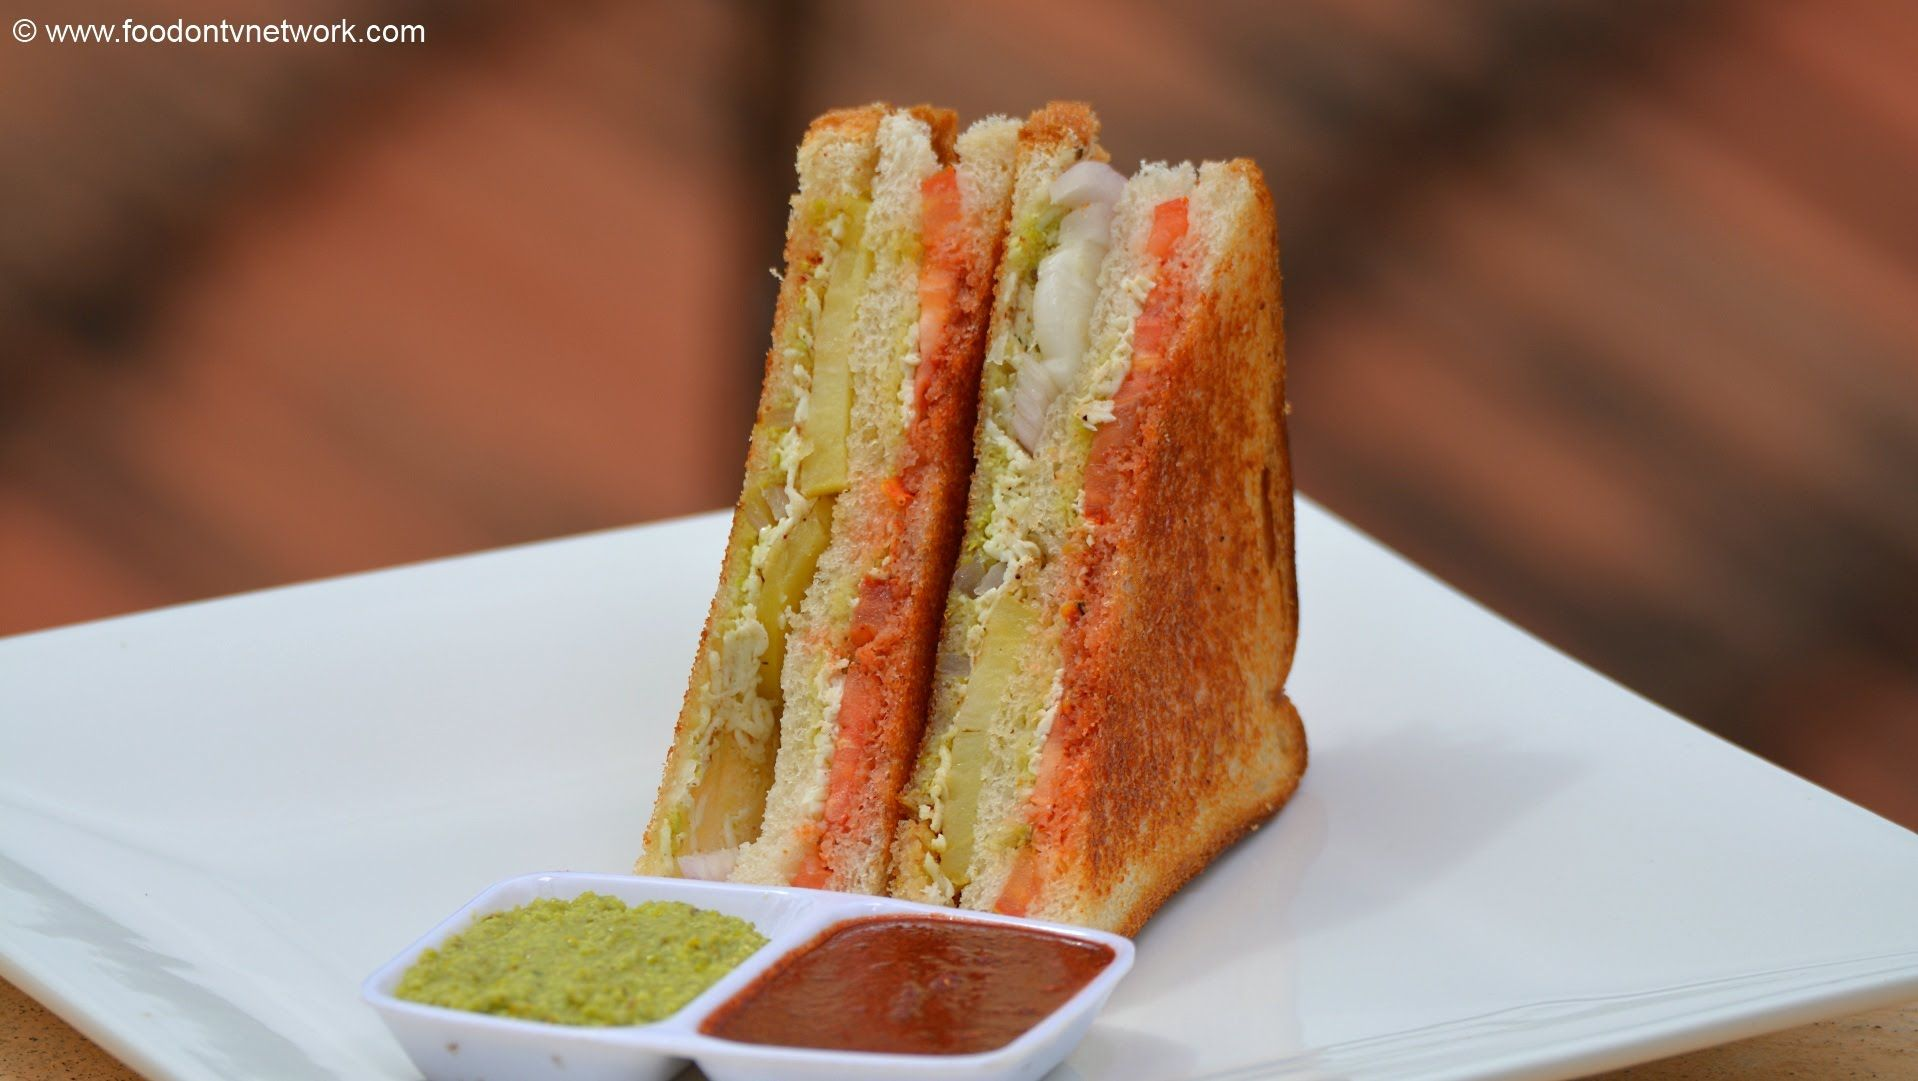 Paneer sandwich sandwich recipe quick fast food nikunj vasoya paneer sandwich sandwich recipe quick fast food nikunj vasoya home forumfinder Image collections